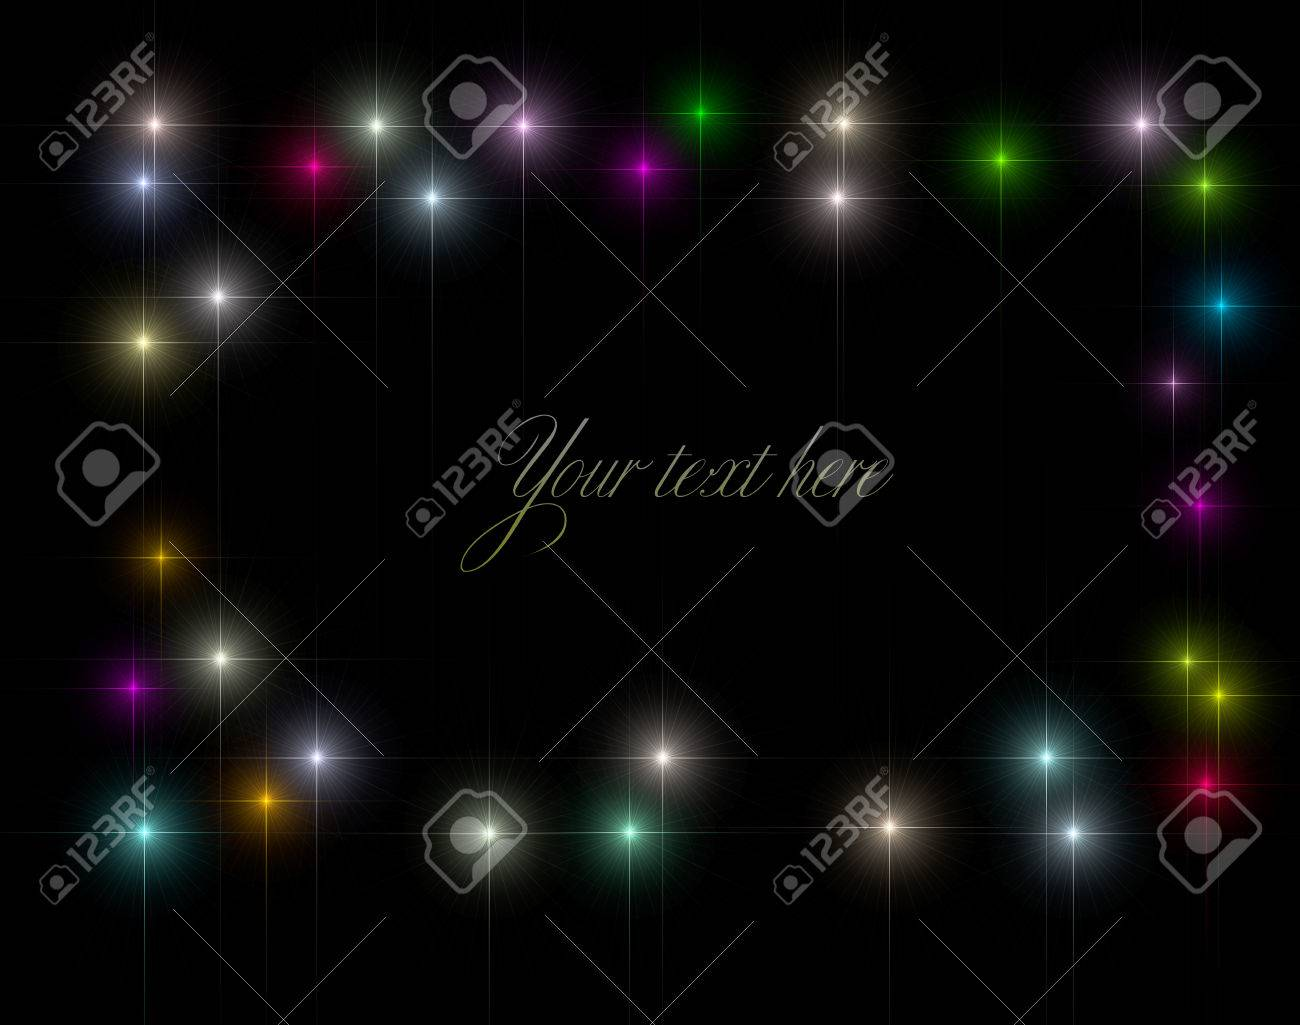 abstract background backdrop representing a starry frame border made of variegated varicolored sparkling